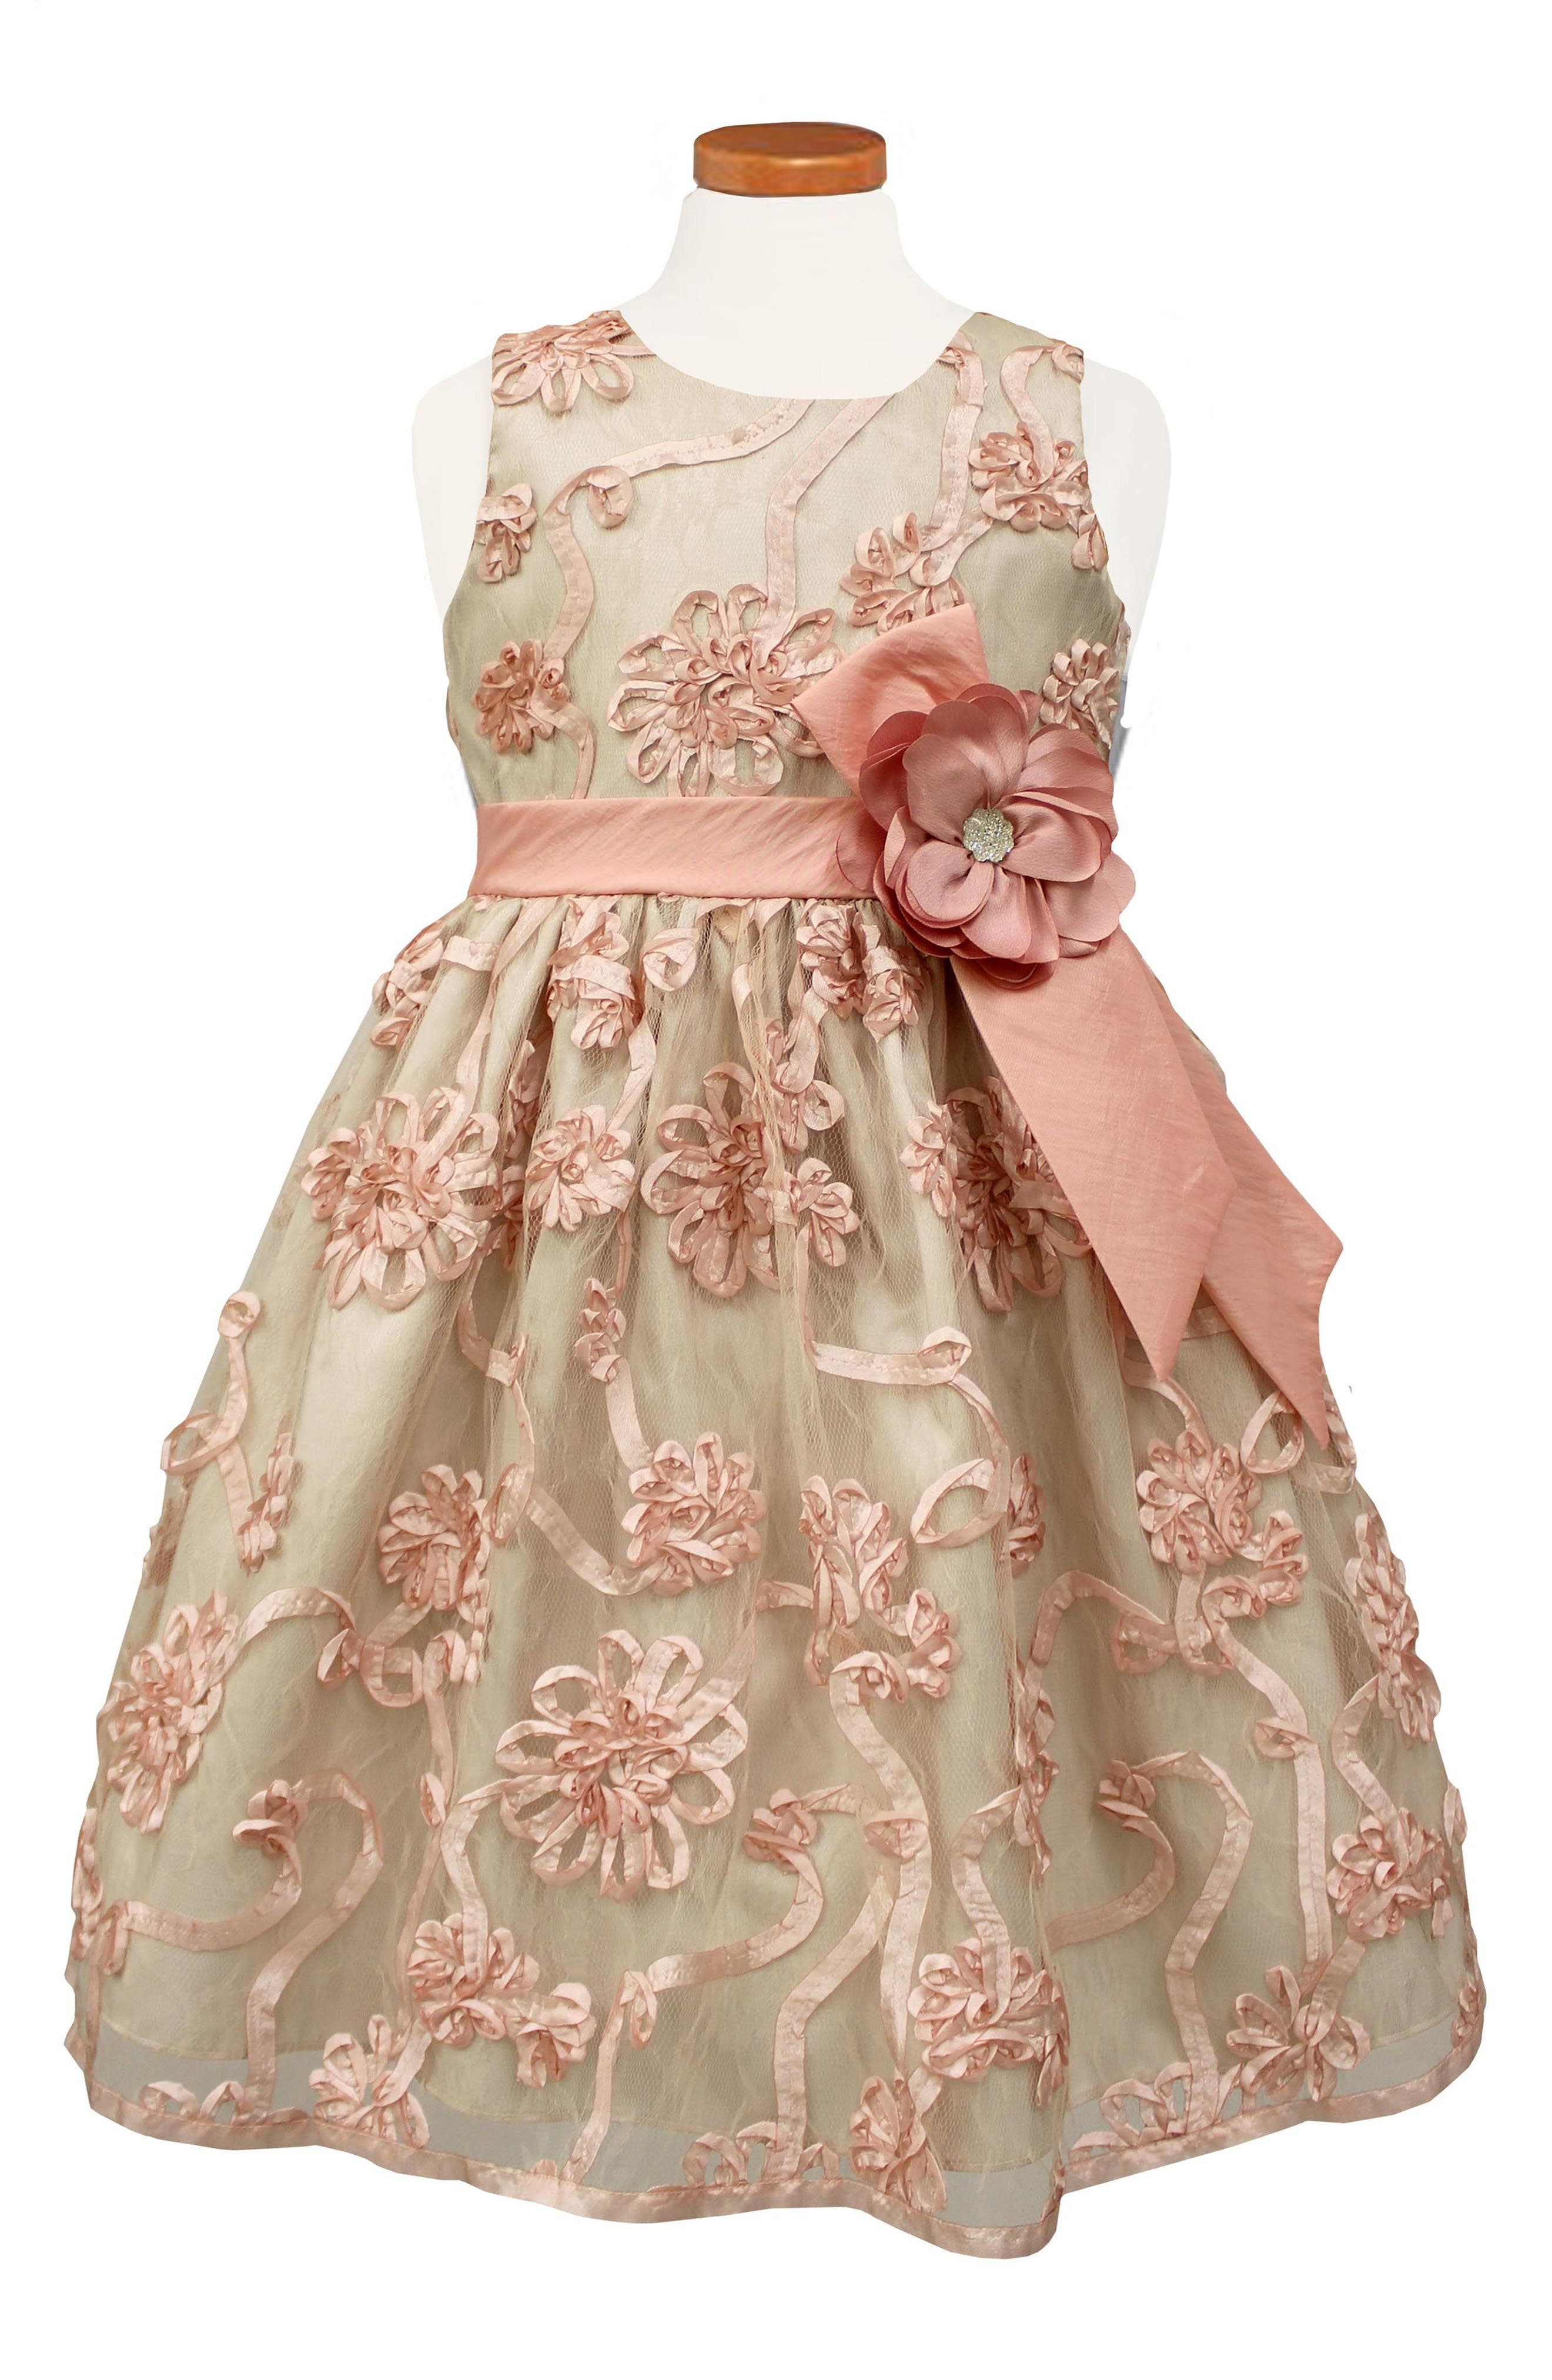 Sorbet Ribbon Rosette Party Dress (Toddler Girls & Little Girls)